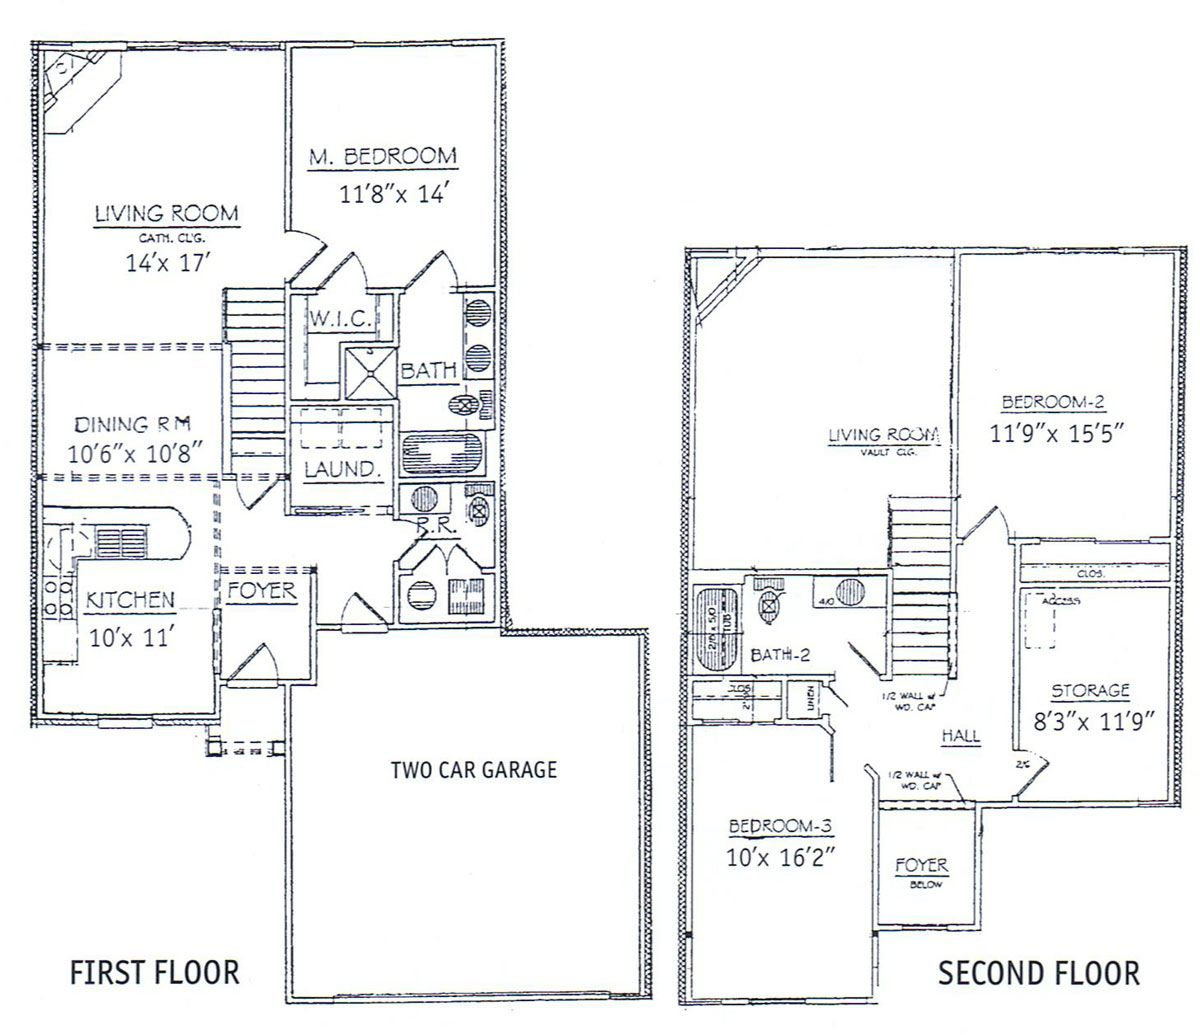 3 bedrooms floor plans 2 story bdrm basement the two for Two story house floor plans free